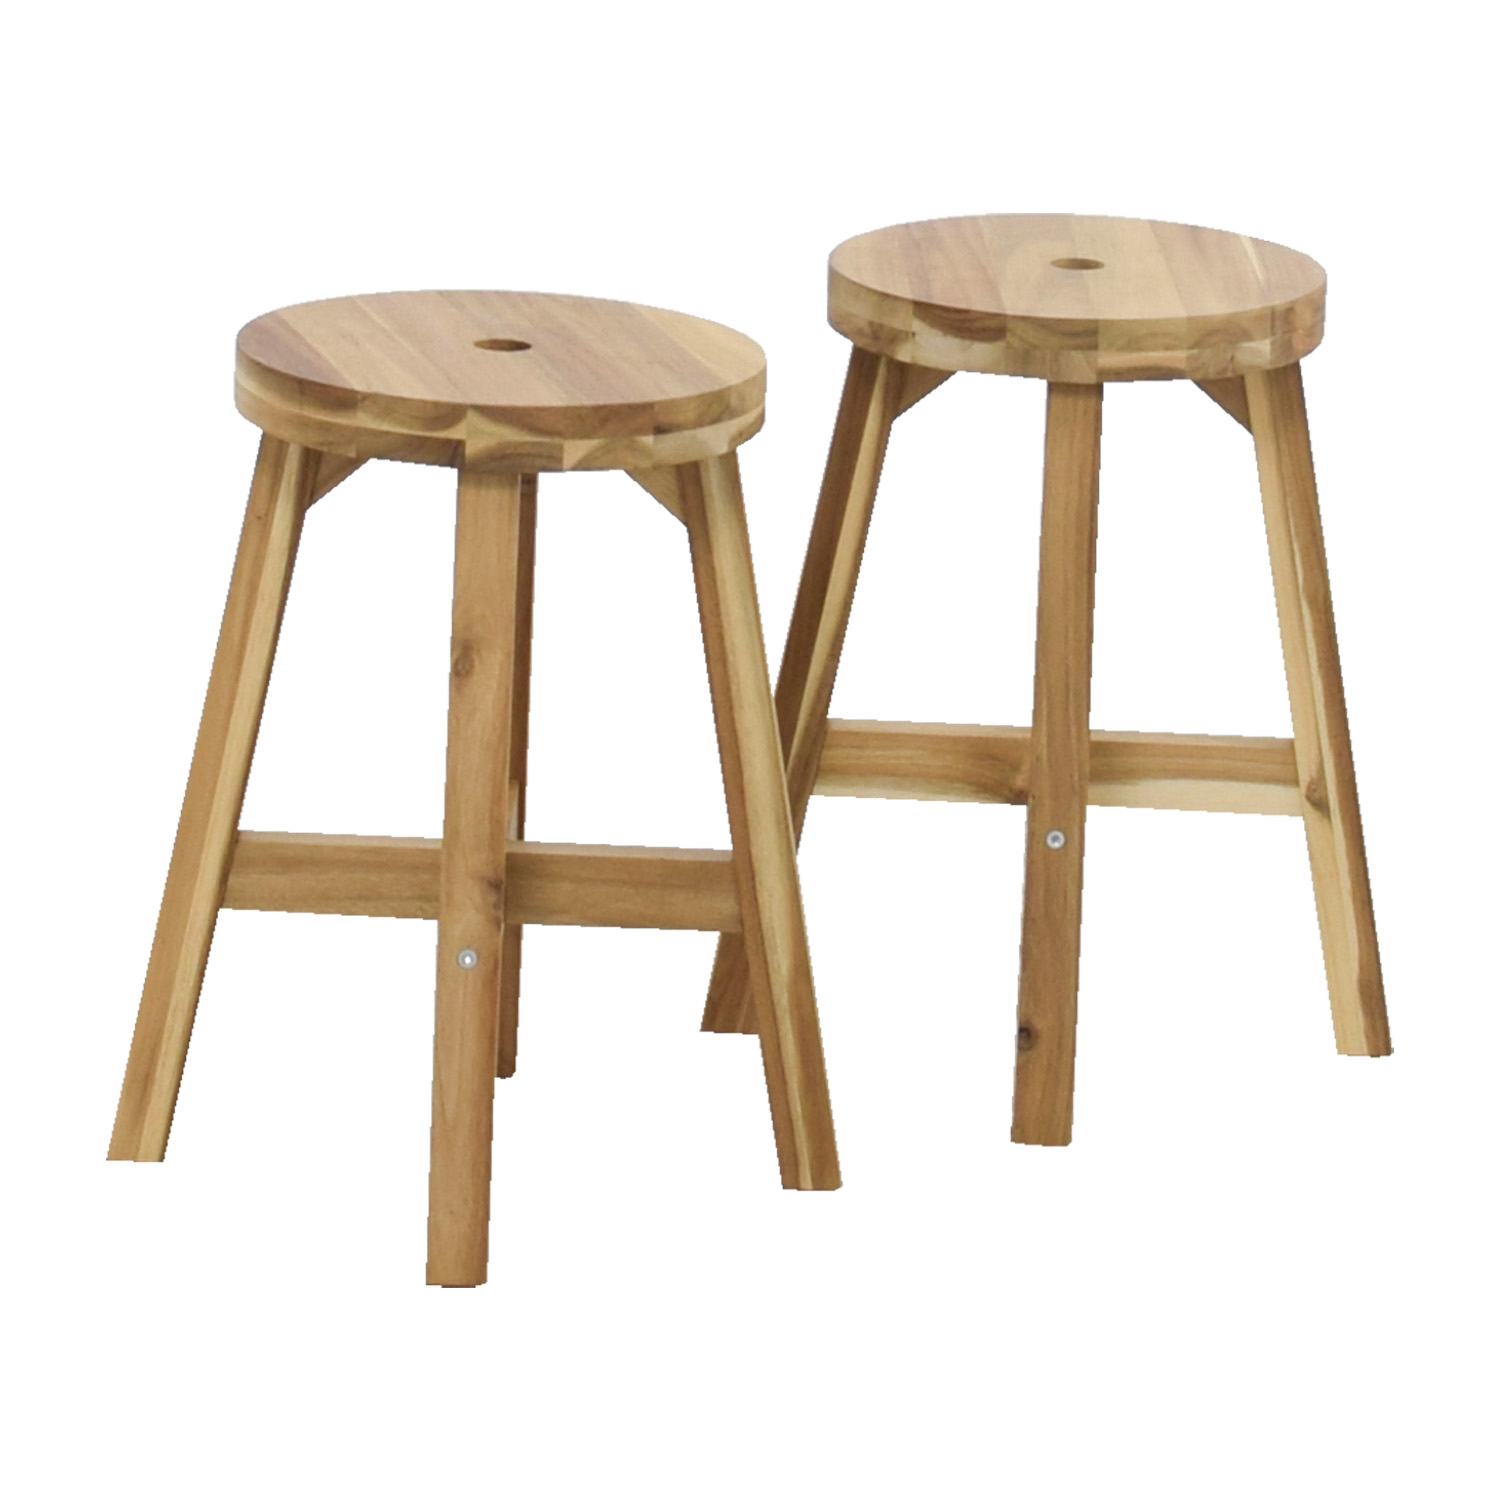 50 off ikea ikea skogsta natural stools chairs. Black Bedroom Furniture Sets. Home Design Ideas